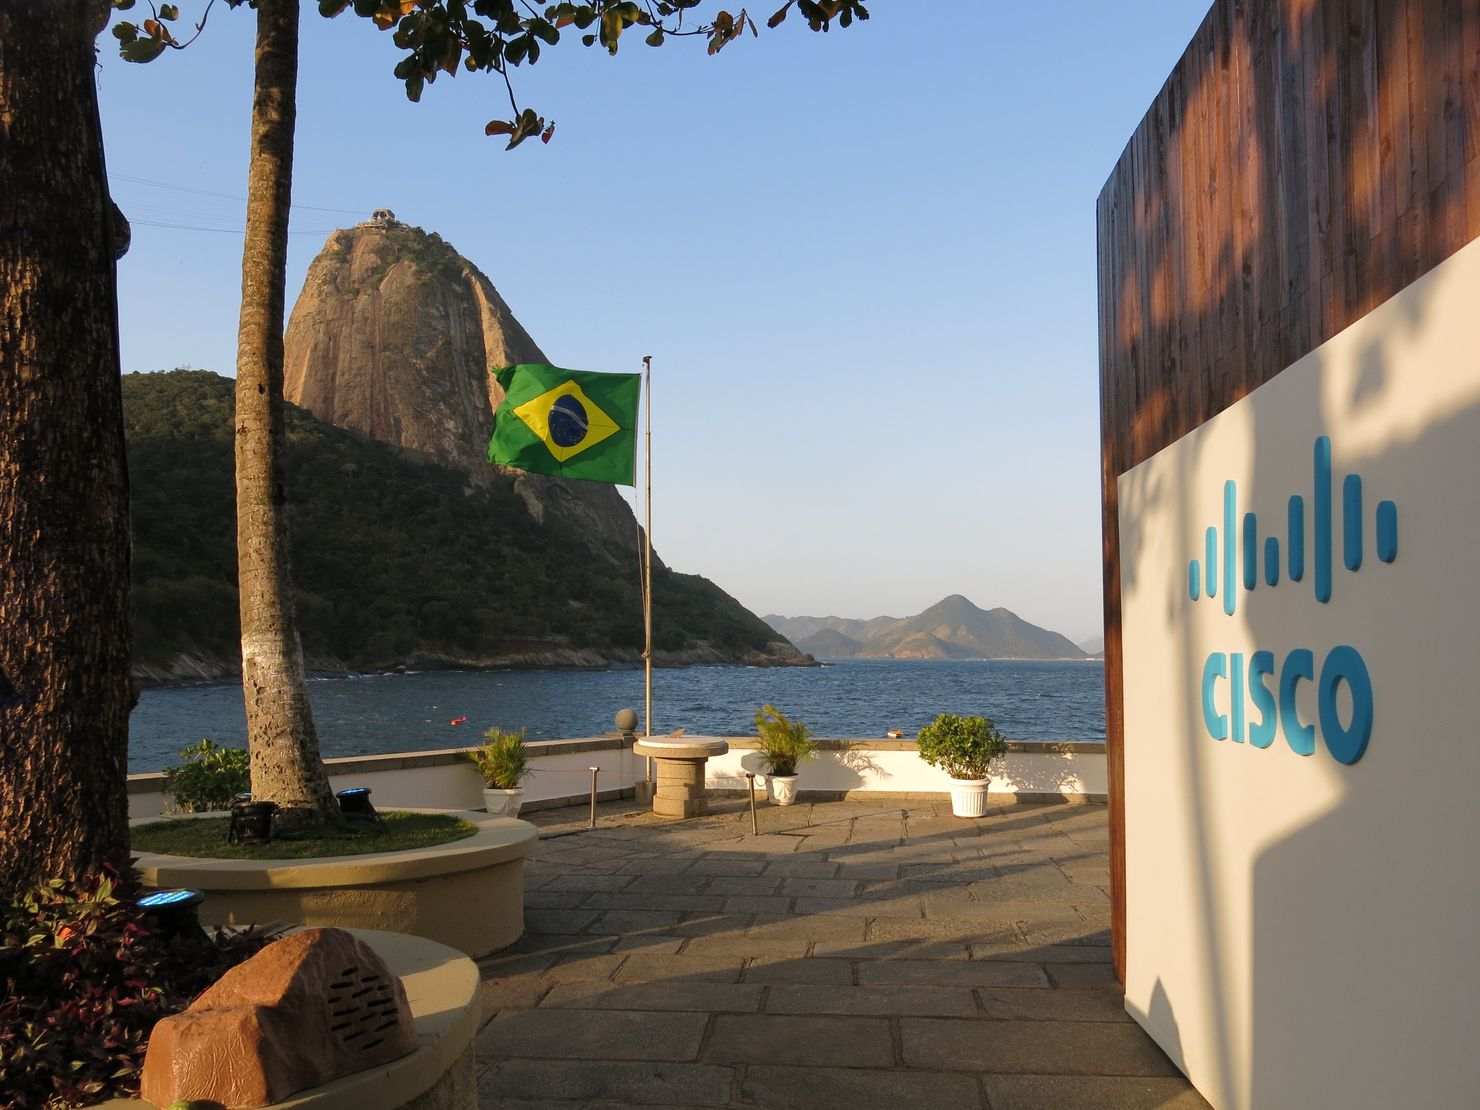 Image 14 for Casa Cisco at the 2016 Summer Olympics